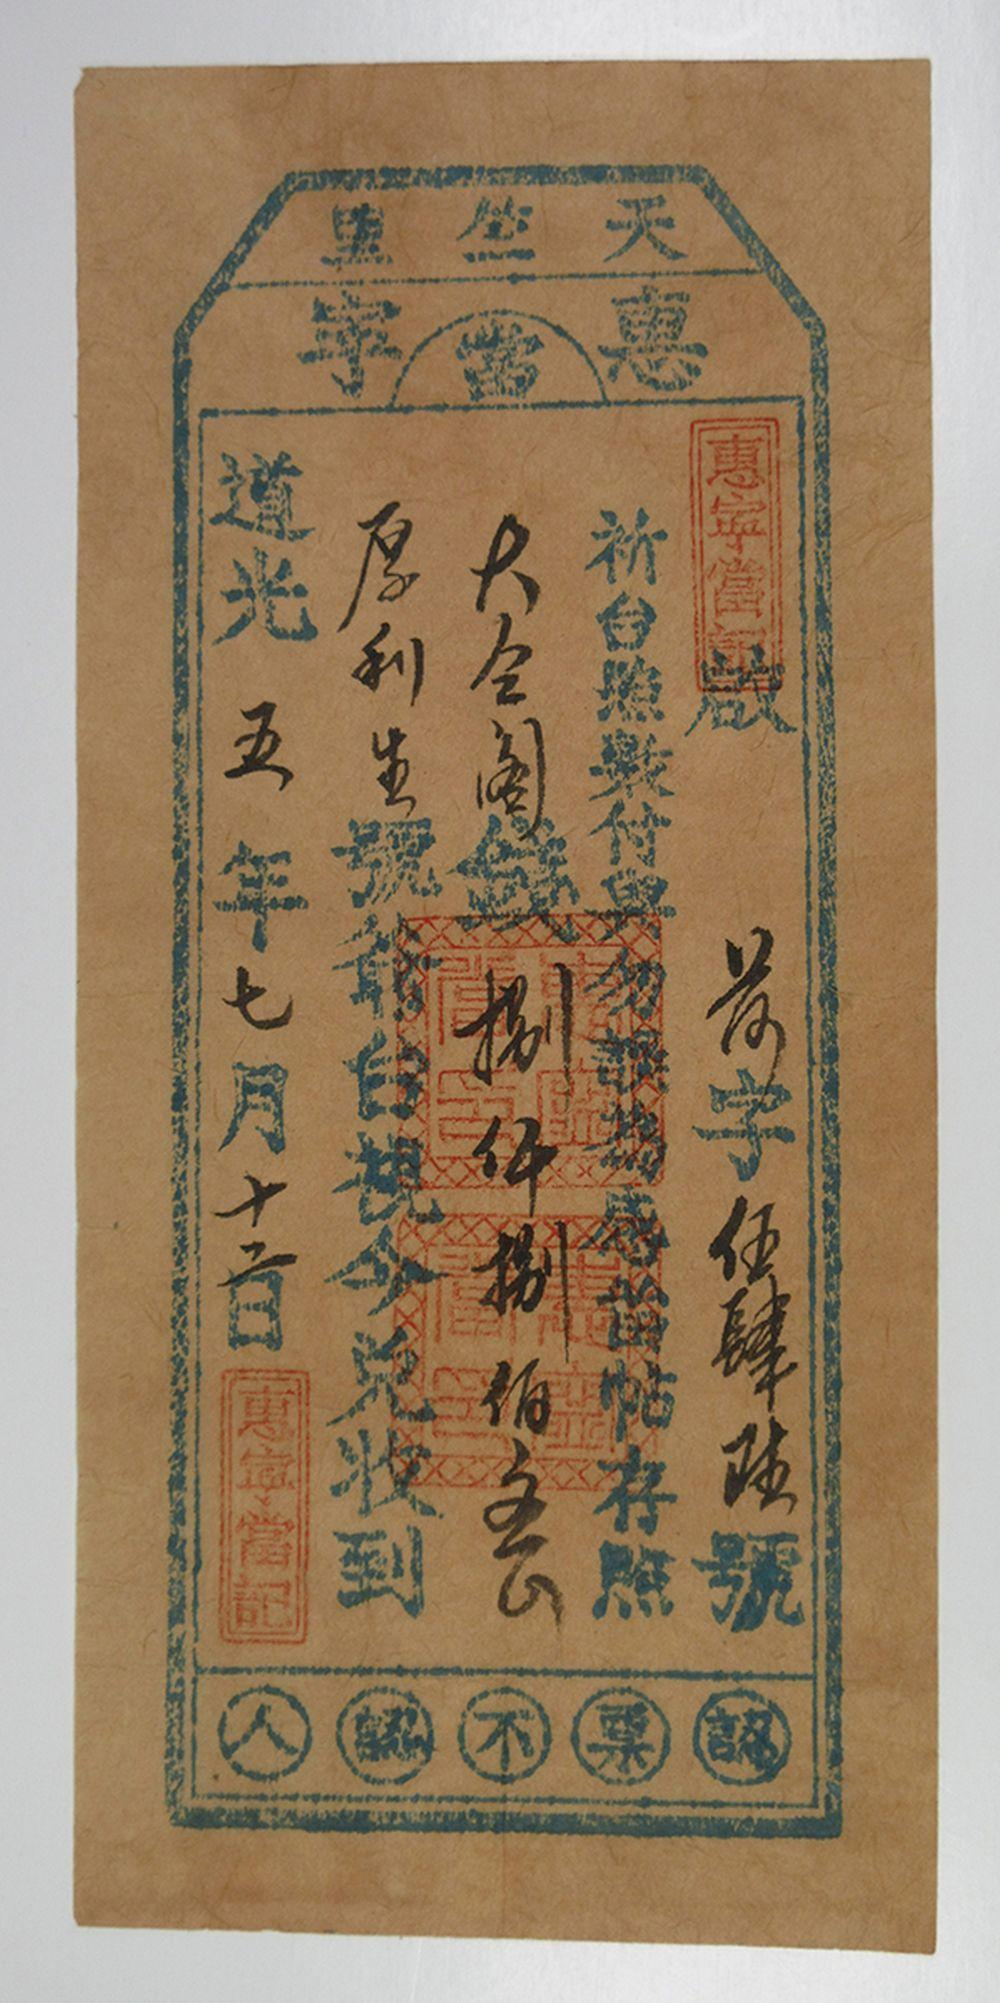 Huining Pawn Shop receipt, 1825 for 8800 cash.